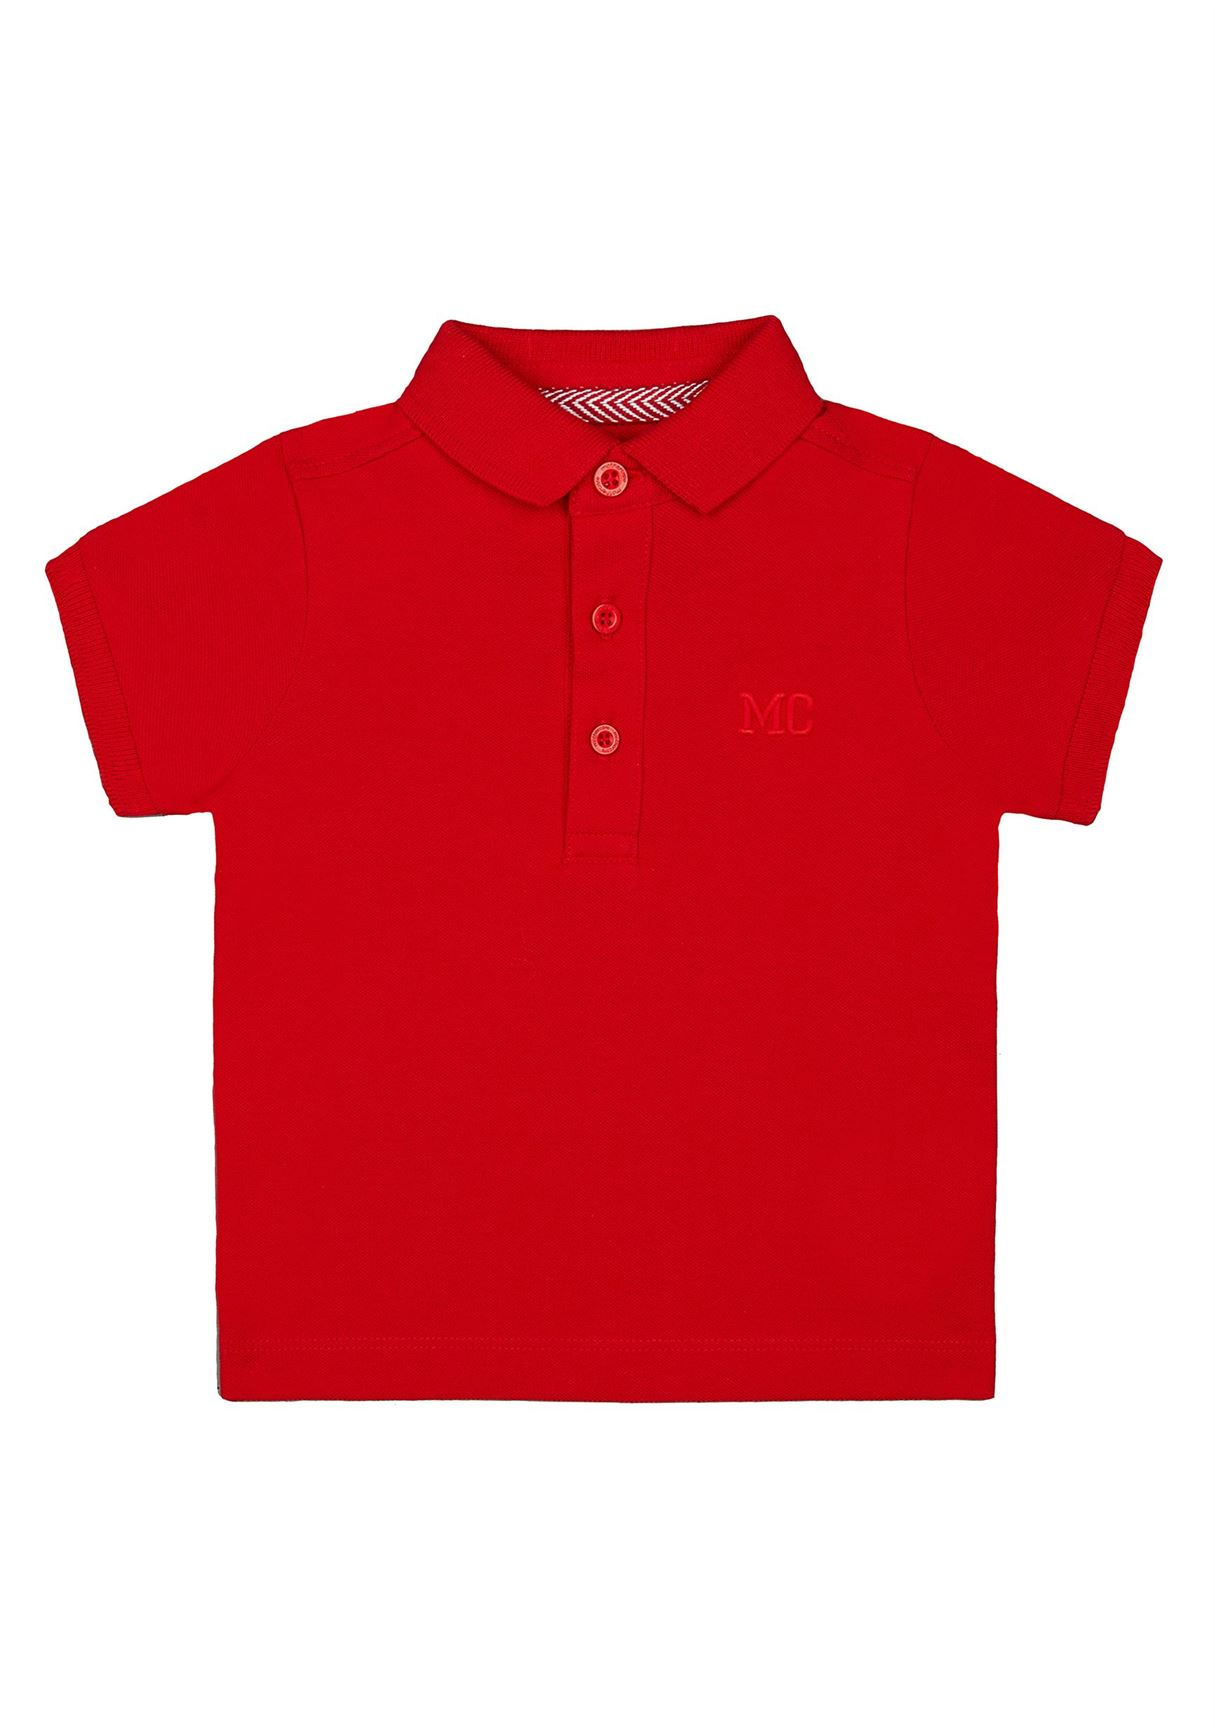 Mothercare Boys Red Solid T-Shirt